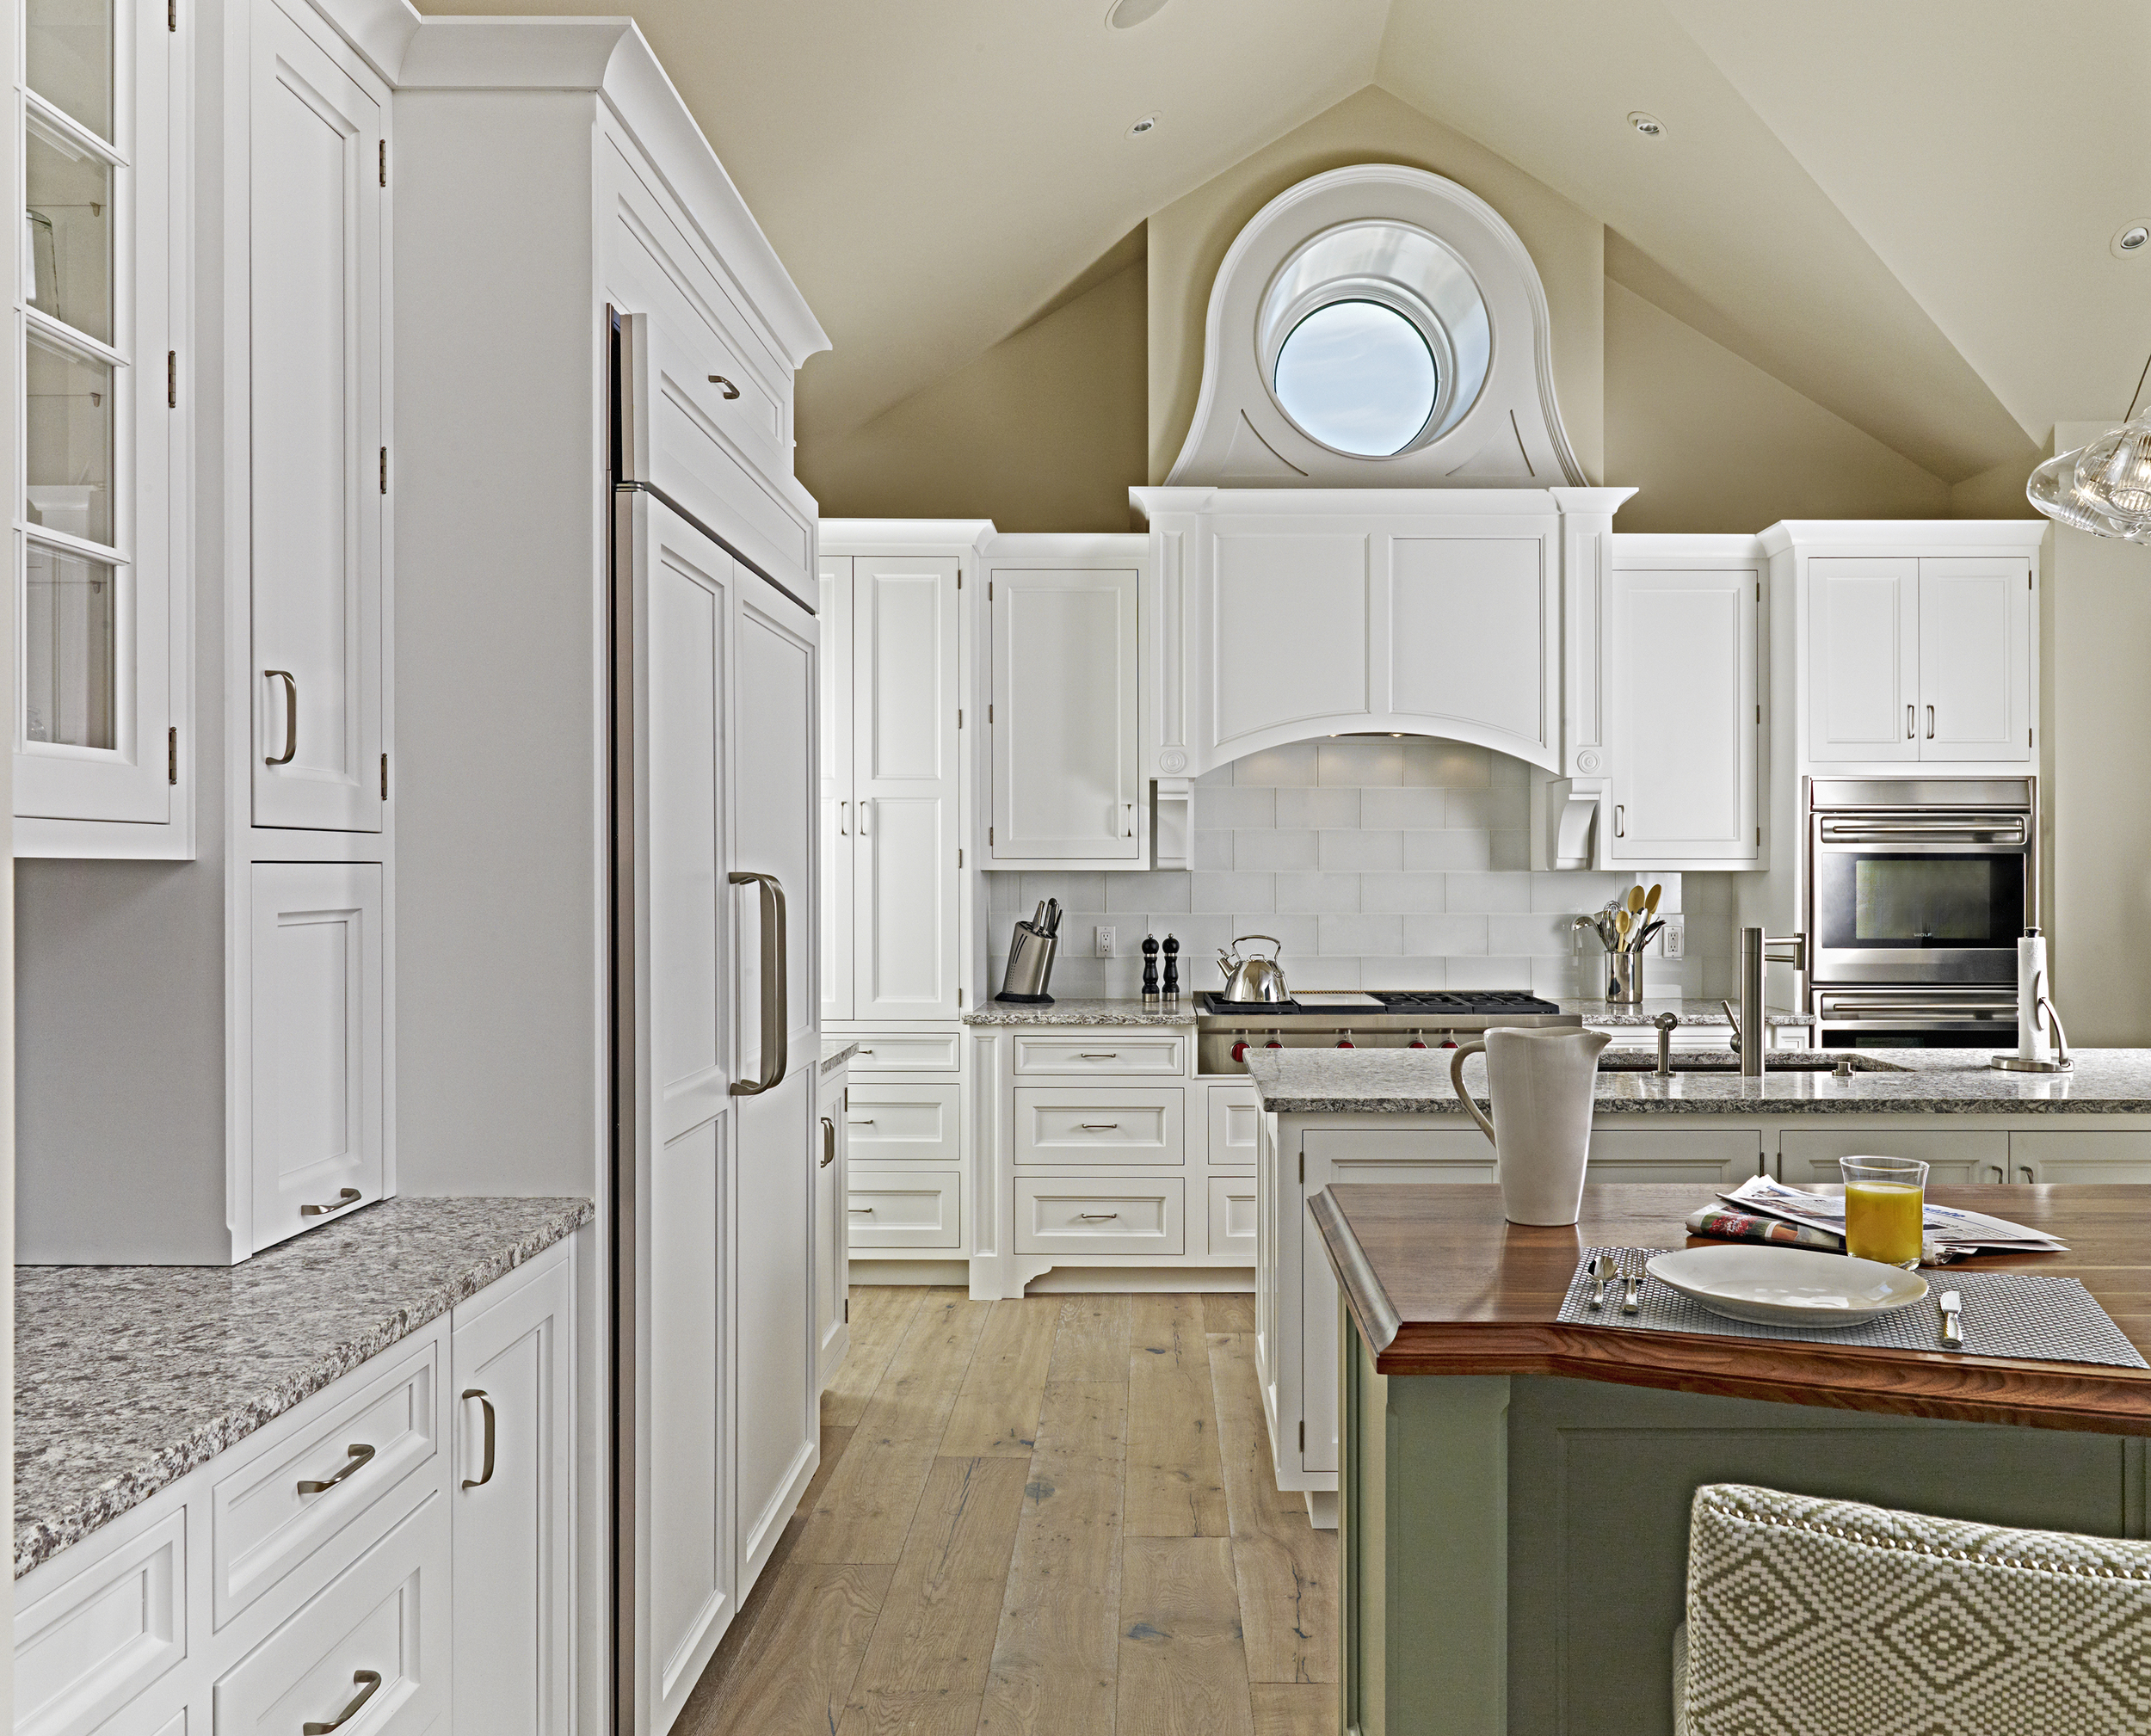 Sulivan-85-White Kitchen.jpg